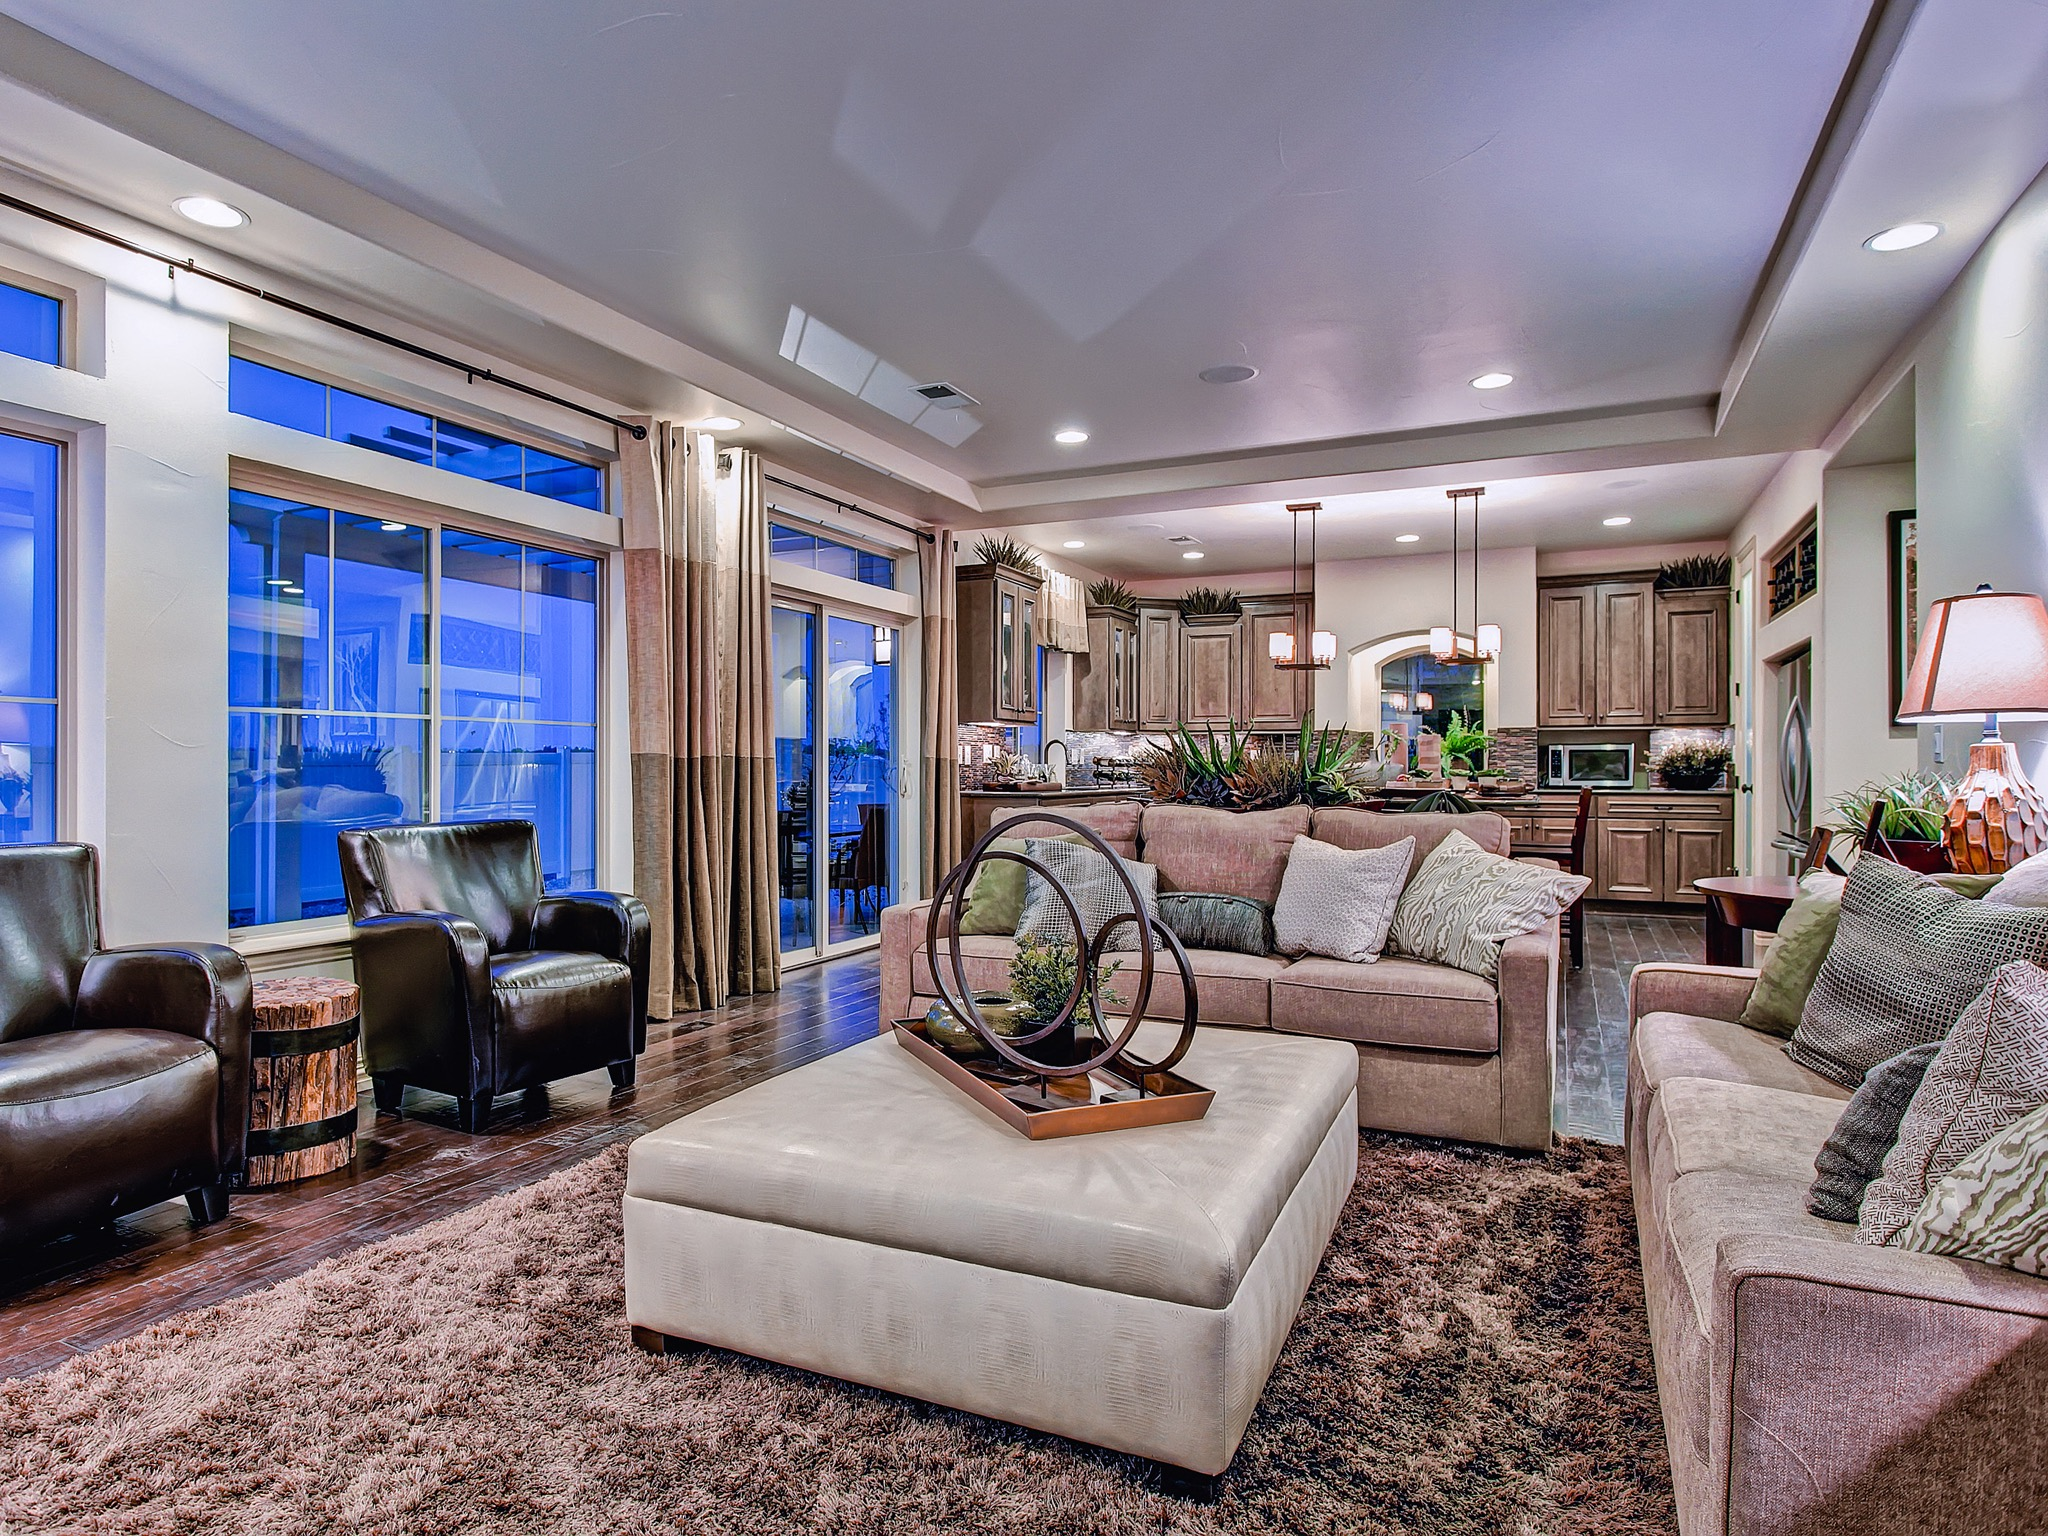 Classic Luxury Living Room With Neutral Ottoman, Large Windows And Tan Sofa (View 3 of 32)